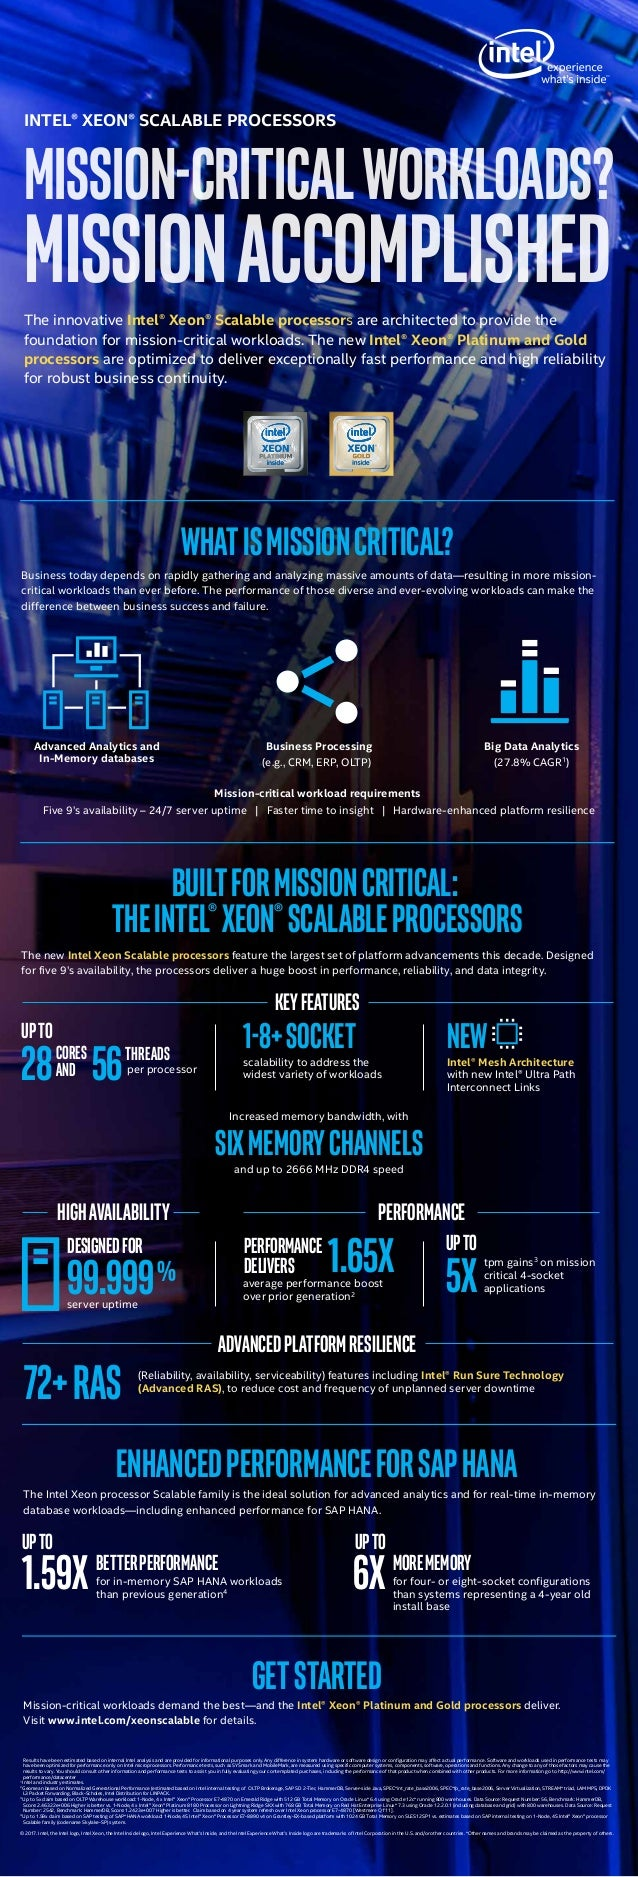 INTEL® XEON® SCALABLE PROCESSORS MISSION-CRITICALWORKLOADS? MISSIONACCOMPLISHEDThe innovative Intel® Xeon® Scalable proces...